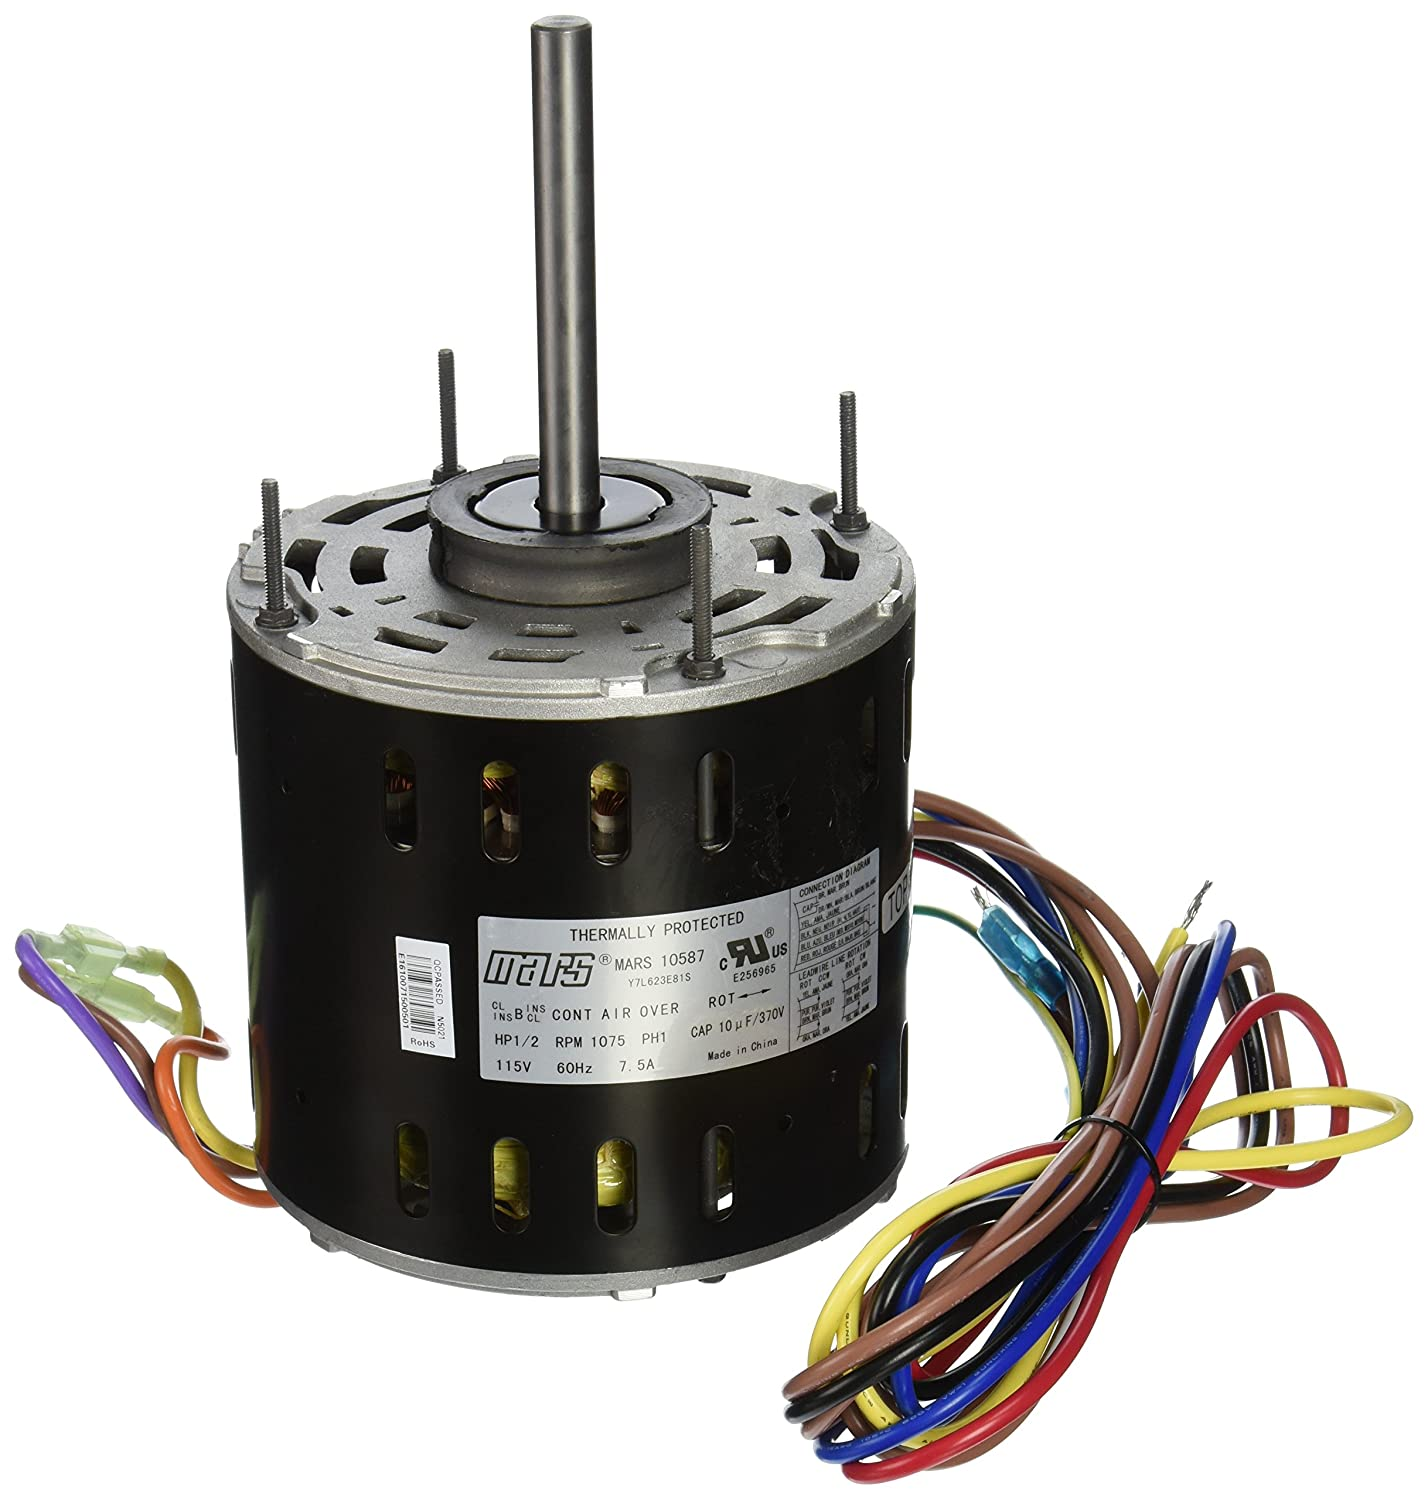 MARS - Motors & Armatures 10587 1/2 hp 115V Direct Drive ... Mars Wiring Diagram Color on color wiring code, bug diagram, color sensor diagram, color filters diagram, color body diagram,